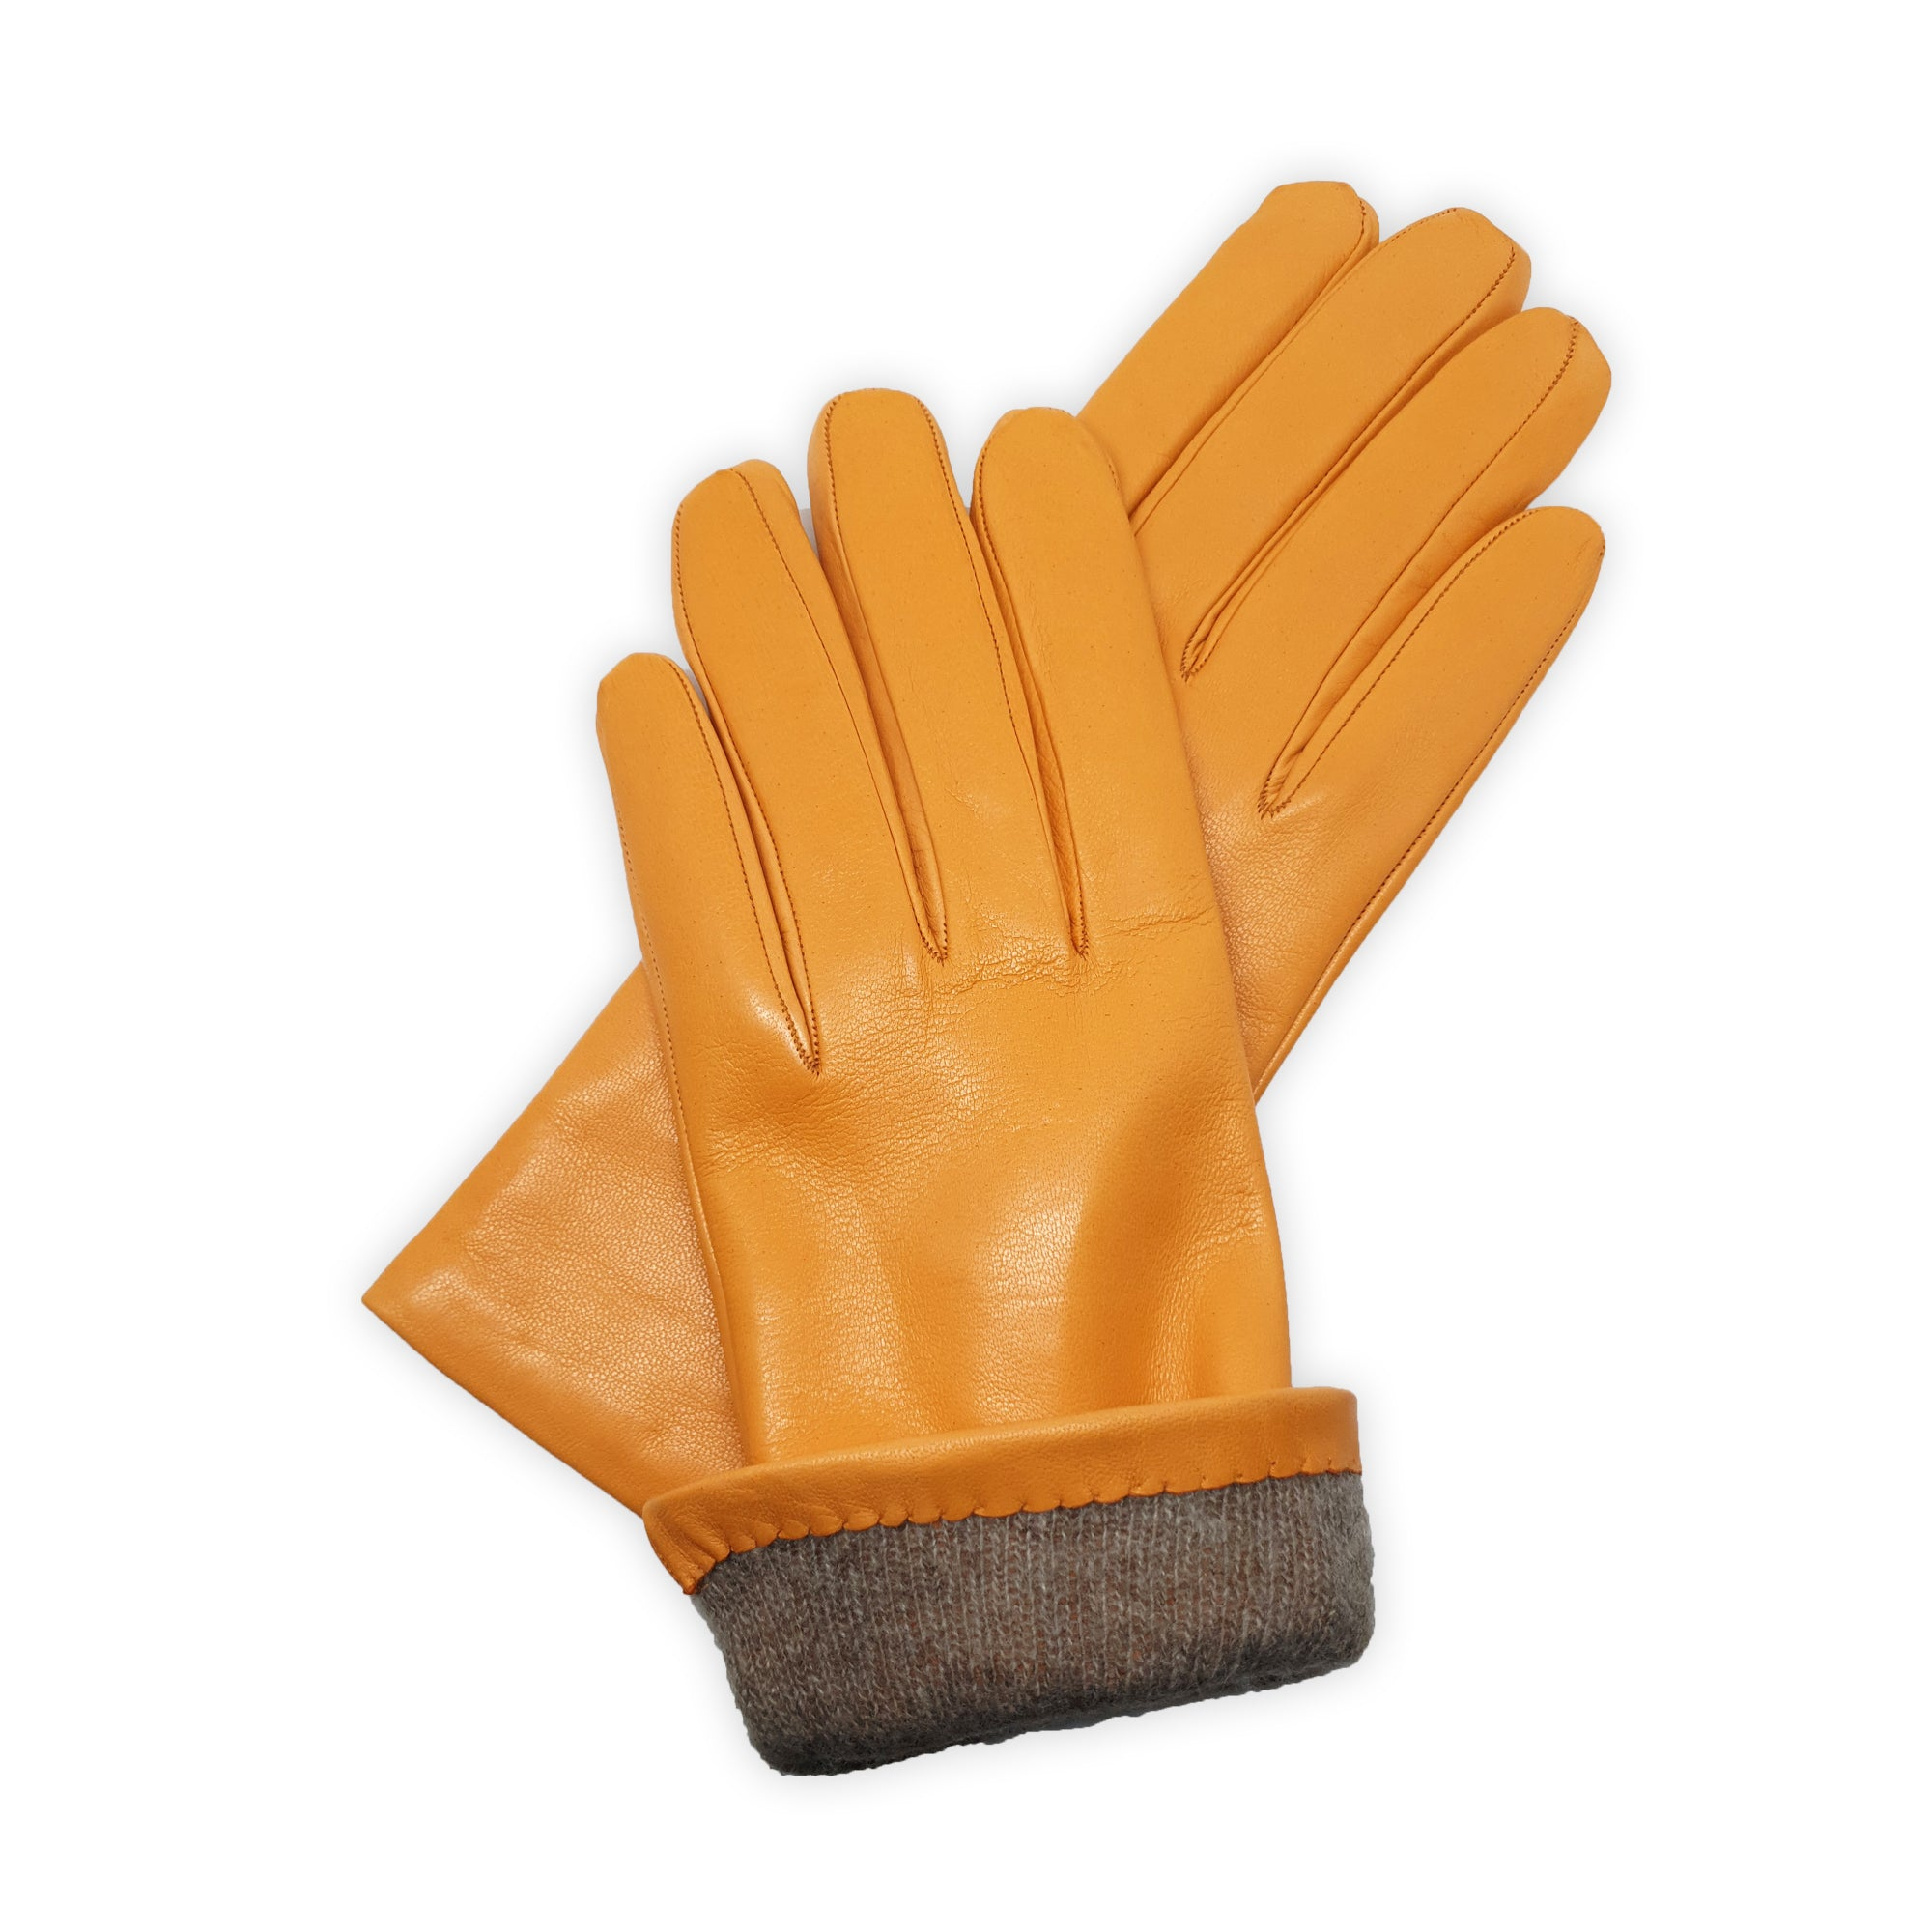 Gloves in real leather lined in 100% cashmere practical for everyday Cagliari model